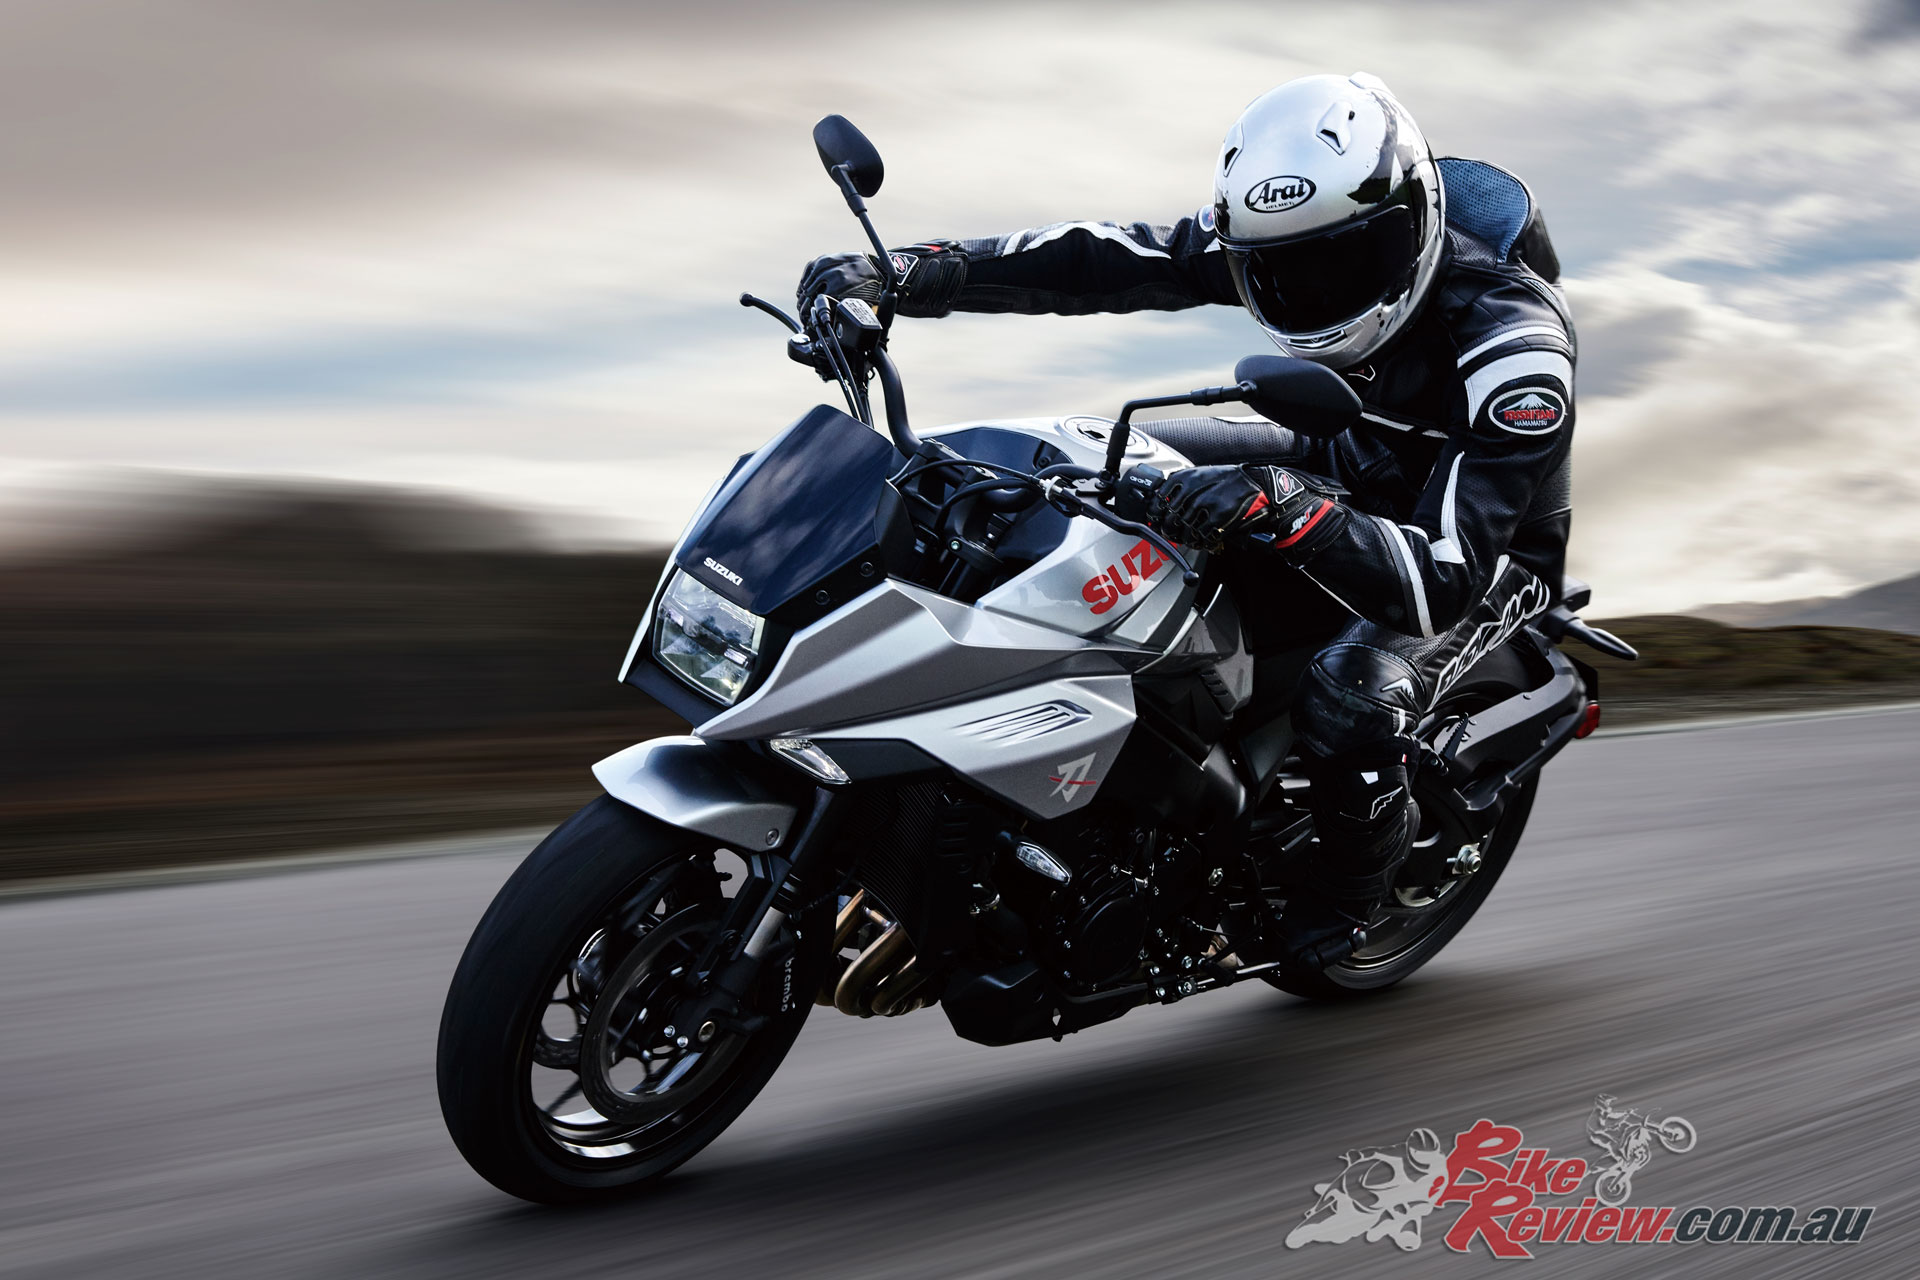 If Katana pricing can match the current GSX-S1000 models it could prove a popular option.